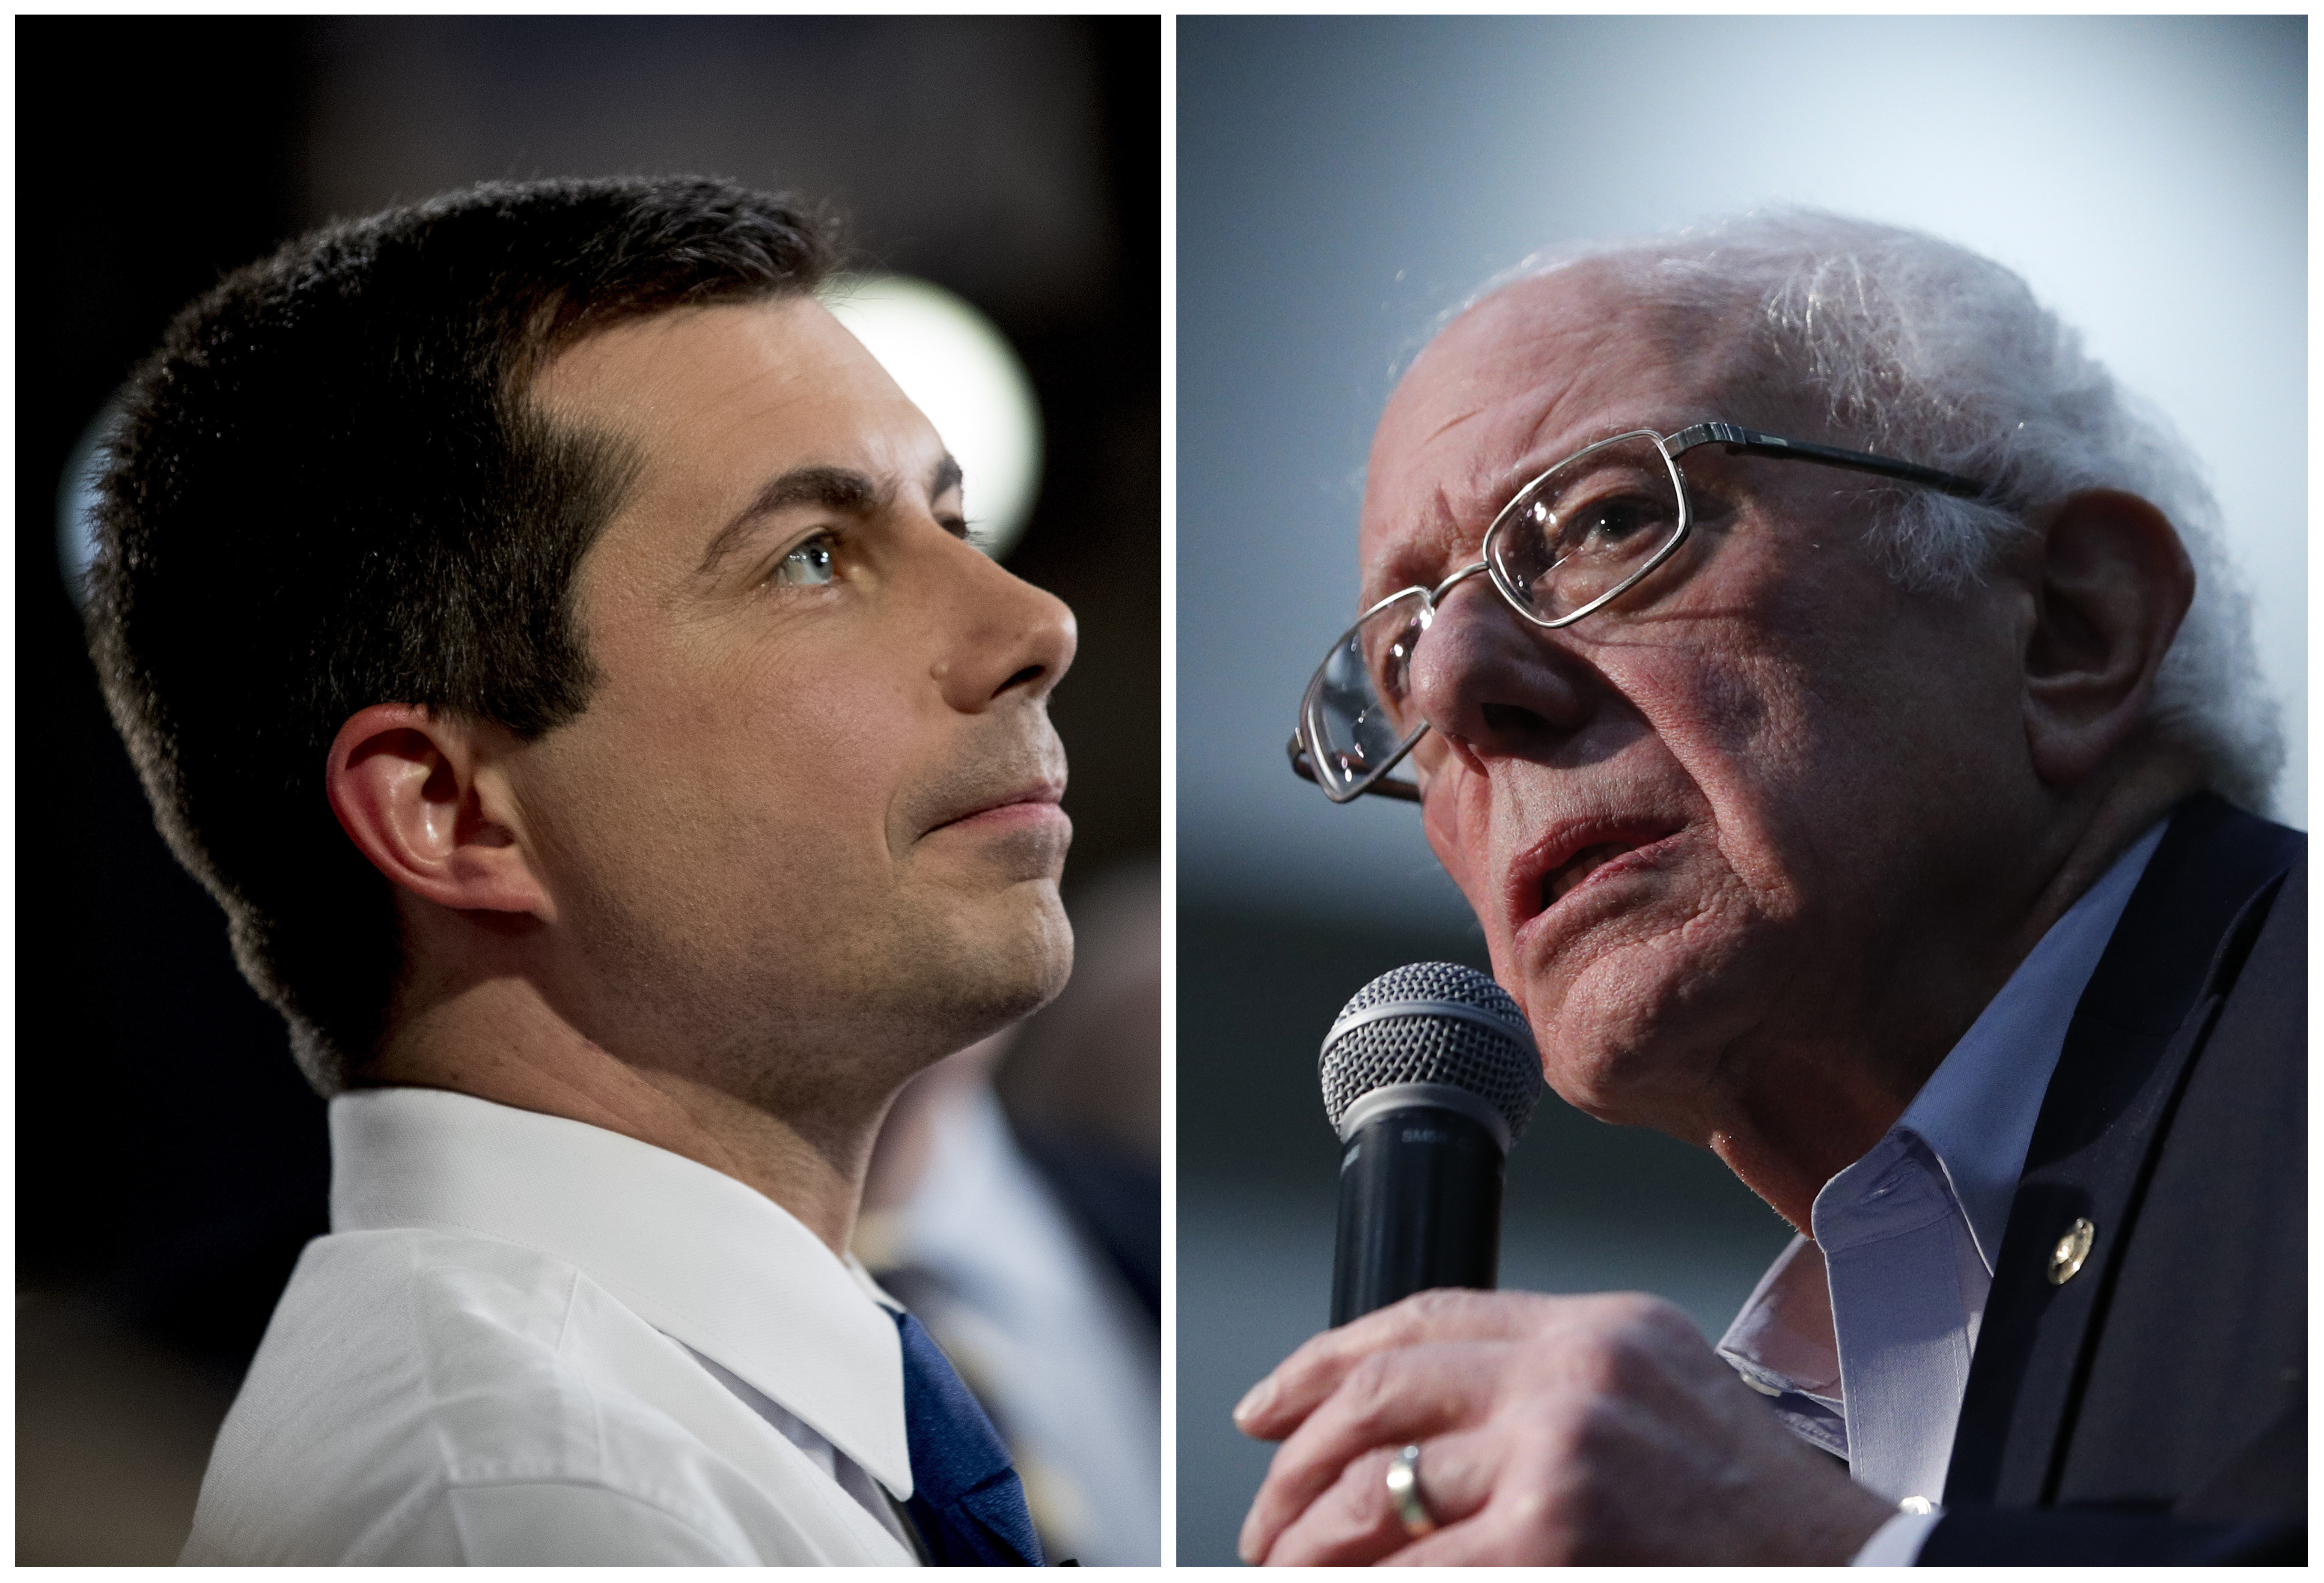 This combination of Jan. 26, 2020, photos shows at left, Democratic presidential candidate former South Bend, Ind., Mayor Pete Buttigieg on Jan. 26, 2020, in Des Moines, Iowa; and at right Democratic presidential candidate Sen. Bernie Sanders, I-Vt., in Sioux City, Iowa. After a daylong delay, partial results from Iowa's Democratic caucuses showed Buttigieg and Sanders ahead of the pack.